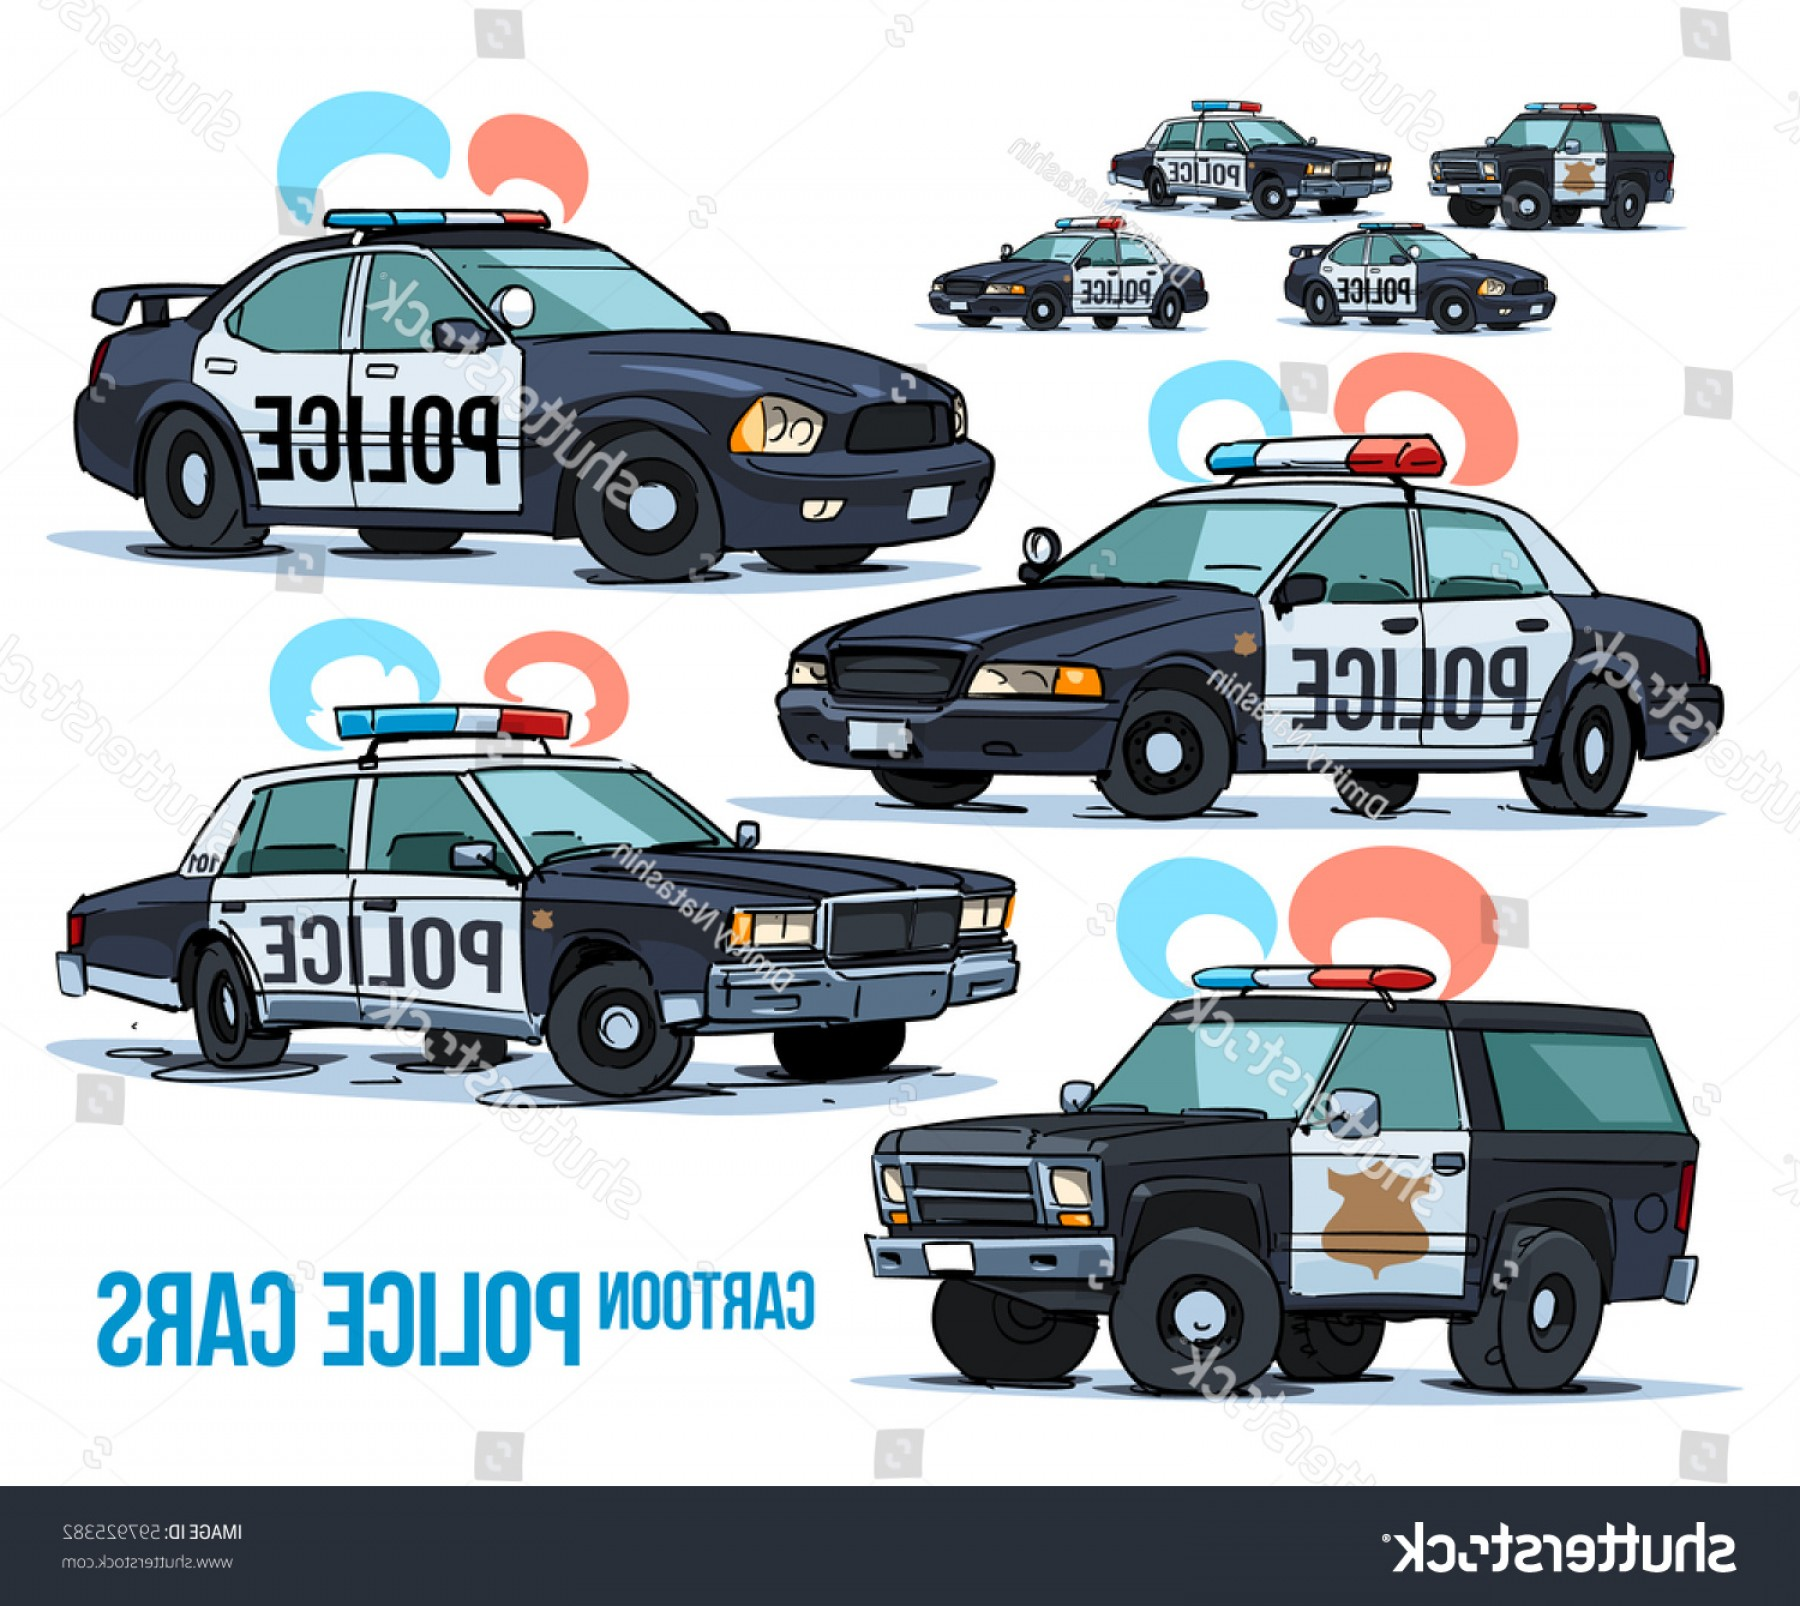 Custom Police Cars Vector: Cartoon Police Cars Isolated On White